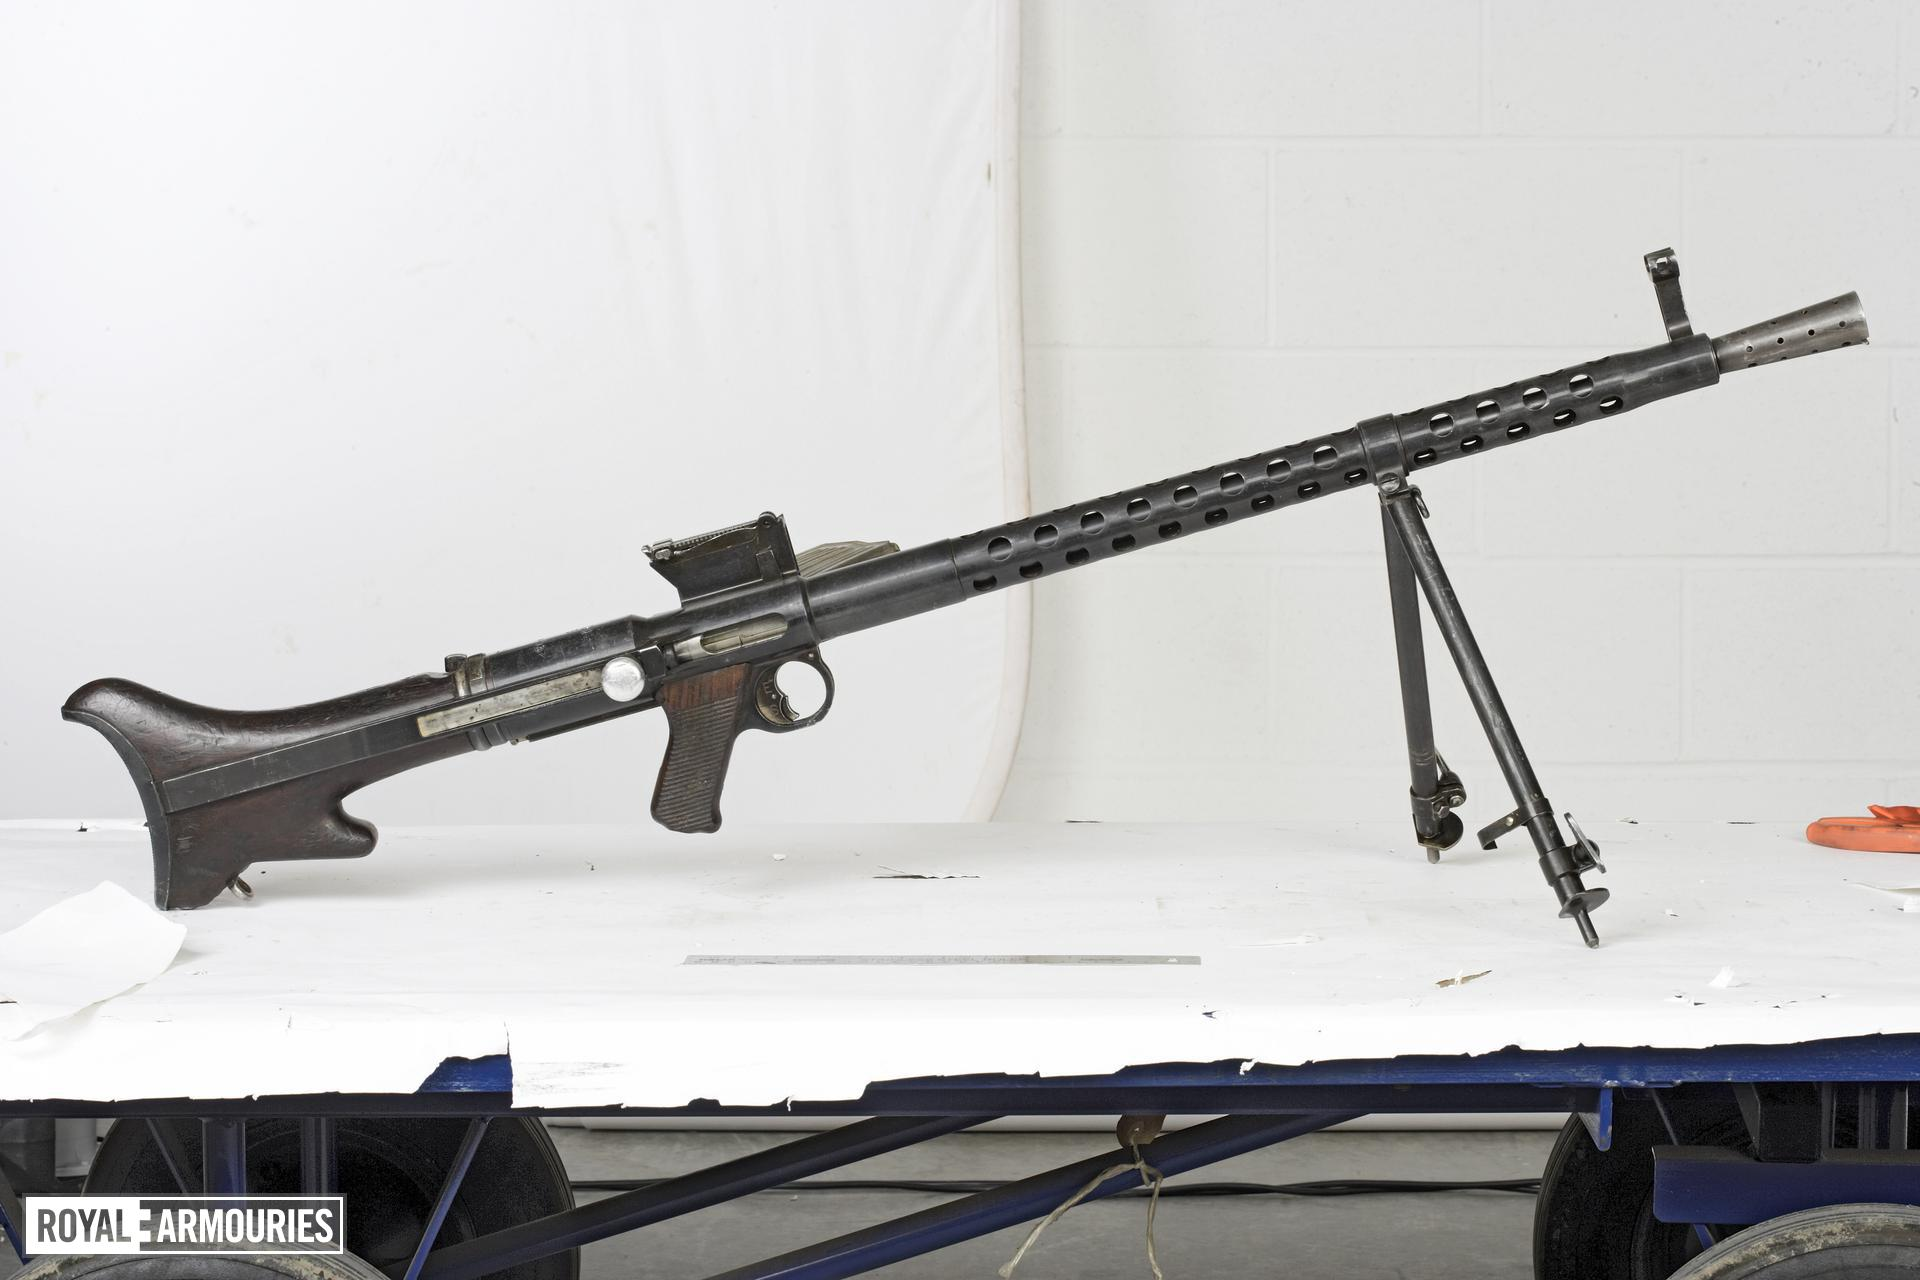 Centrefire automatic light machine gun - Solothurn Model 30S